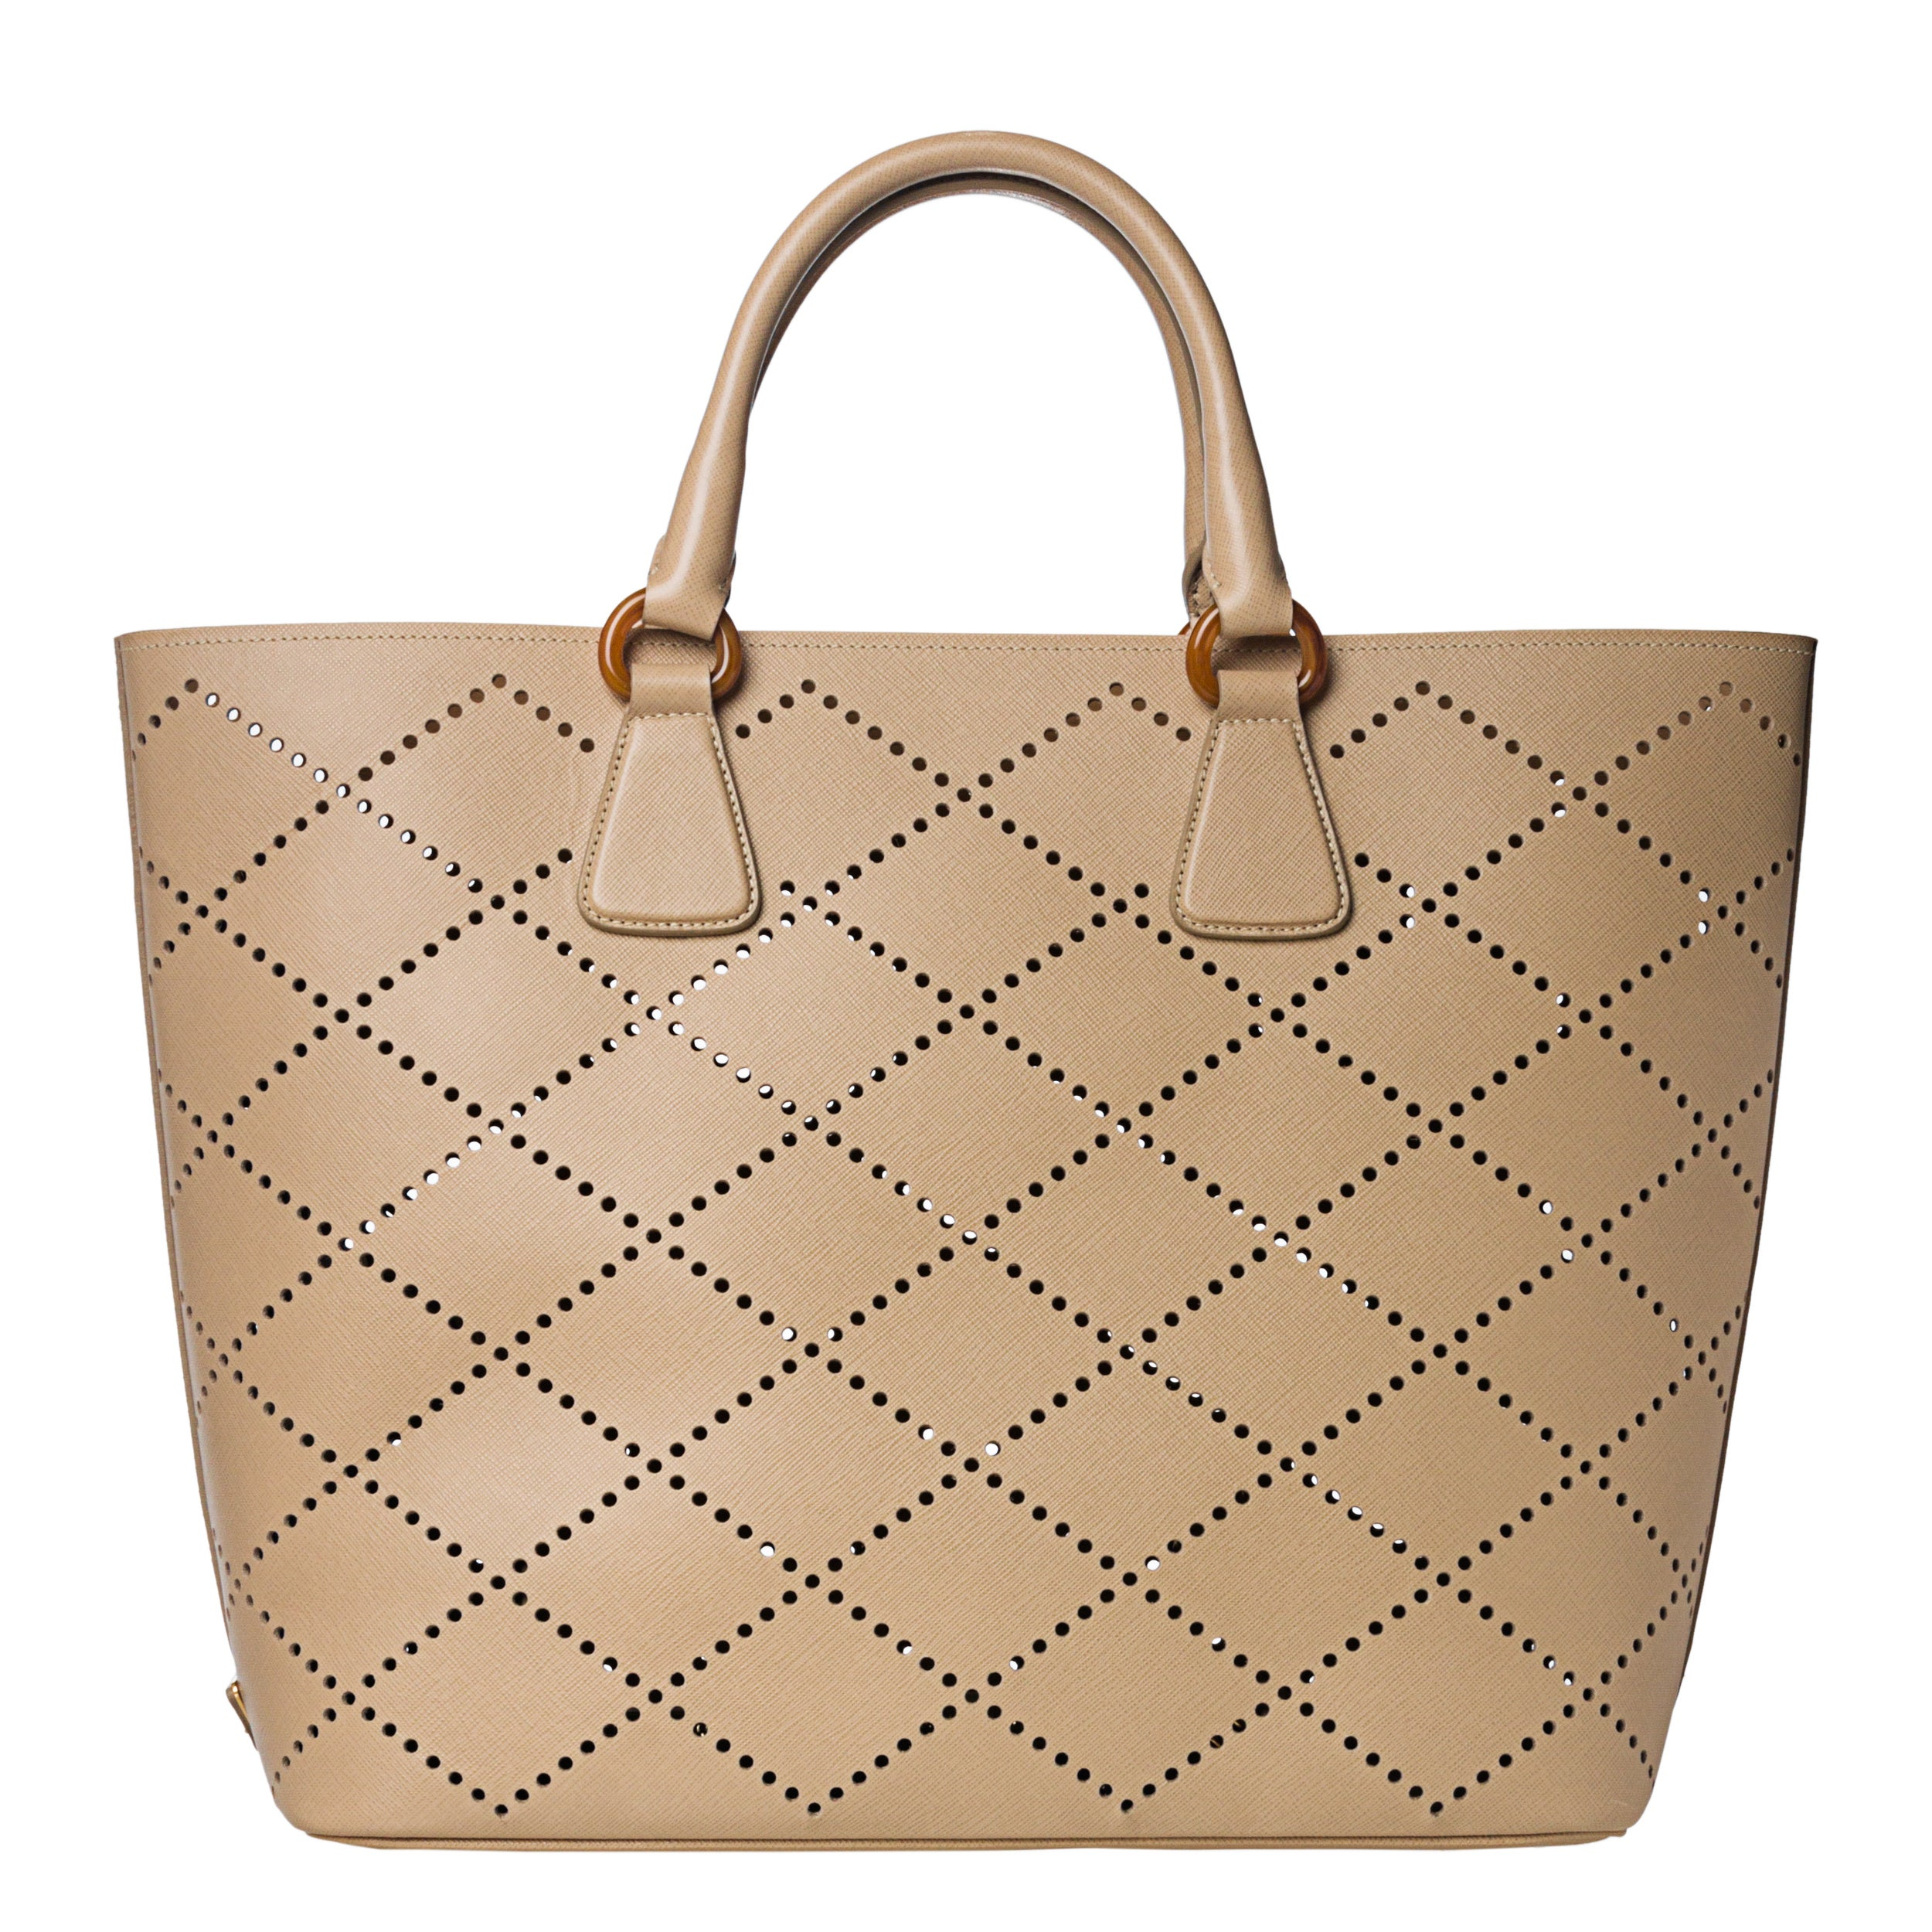 Prada Bag Beige Prada Large Beige Perforated